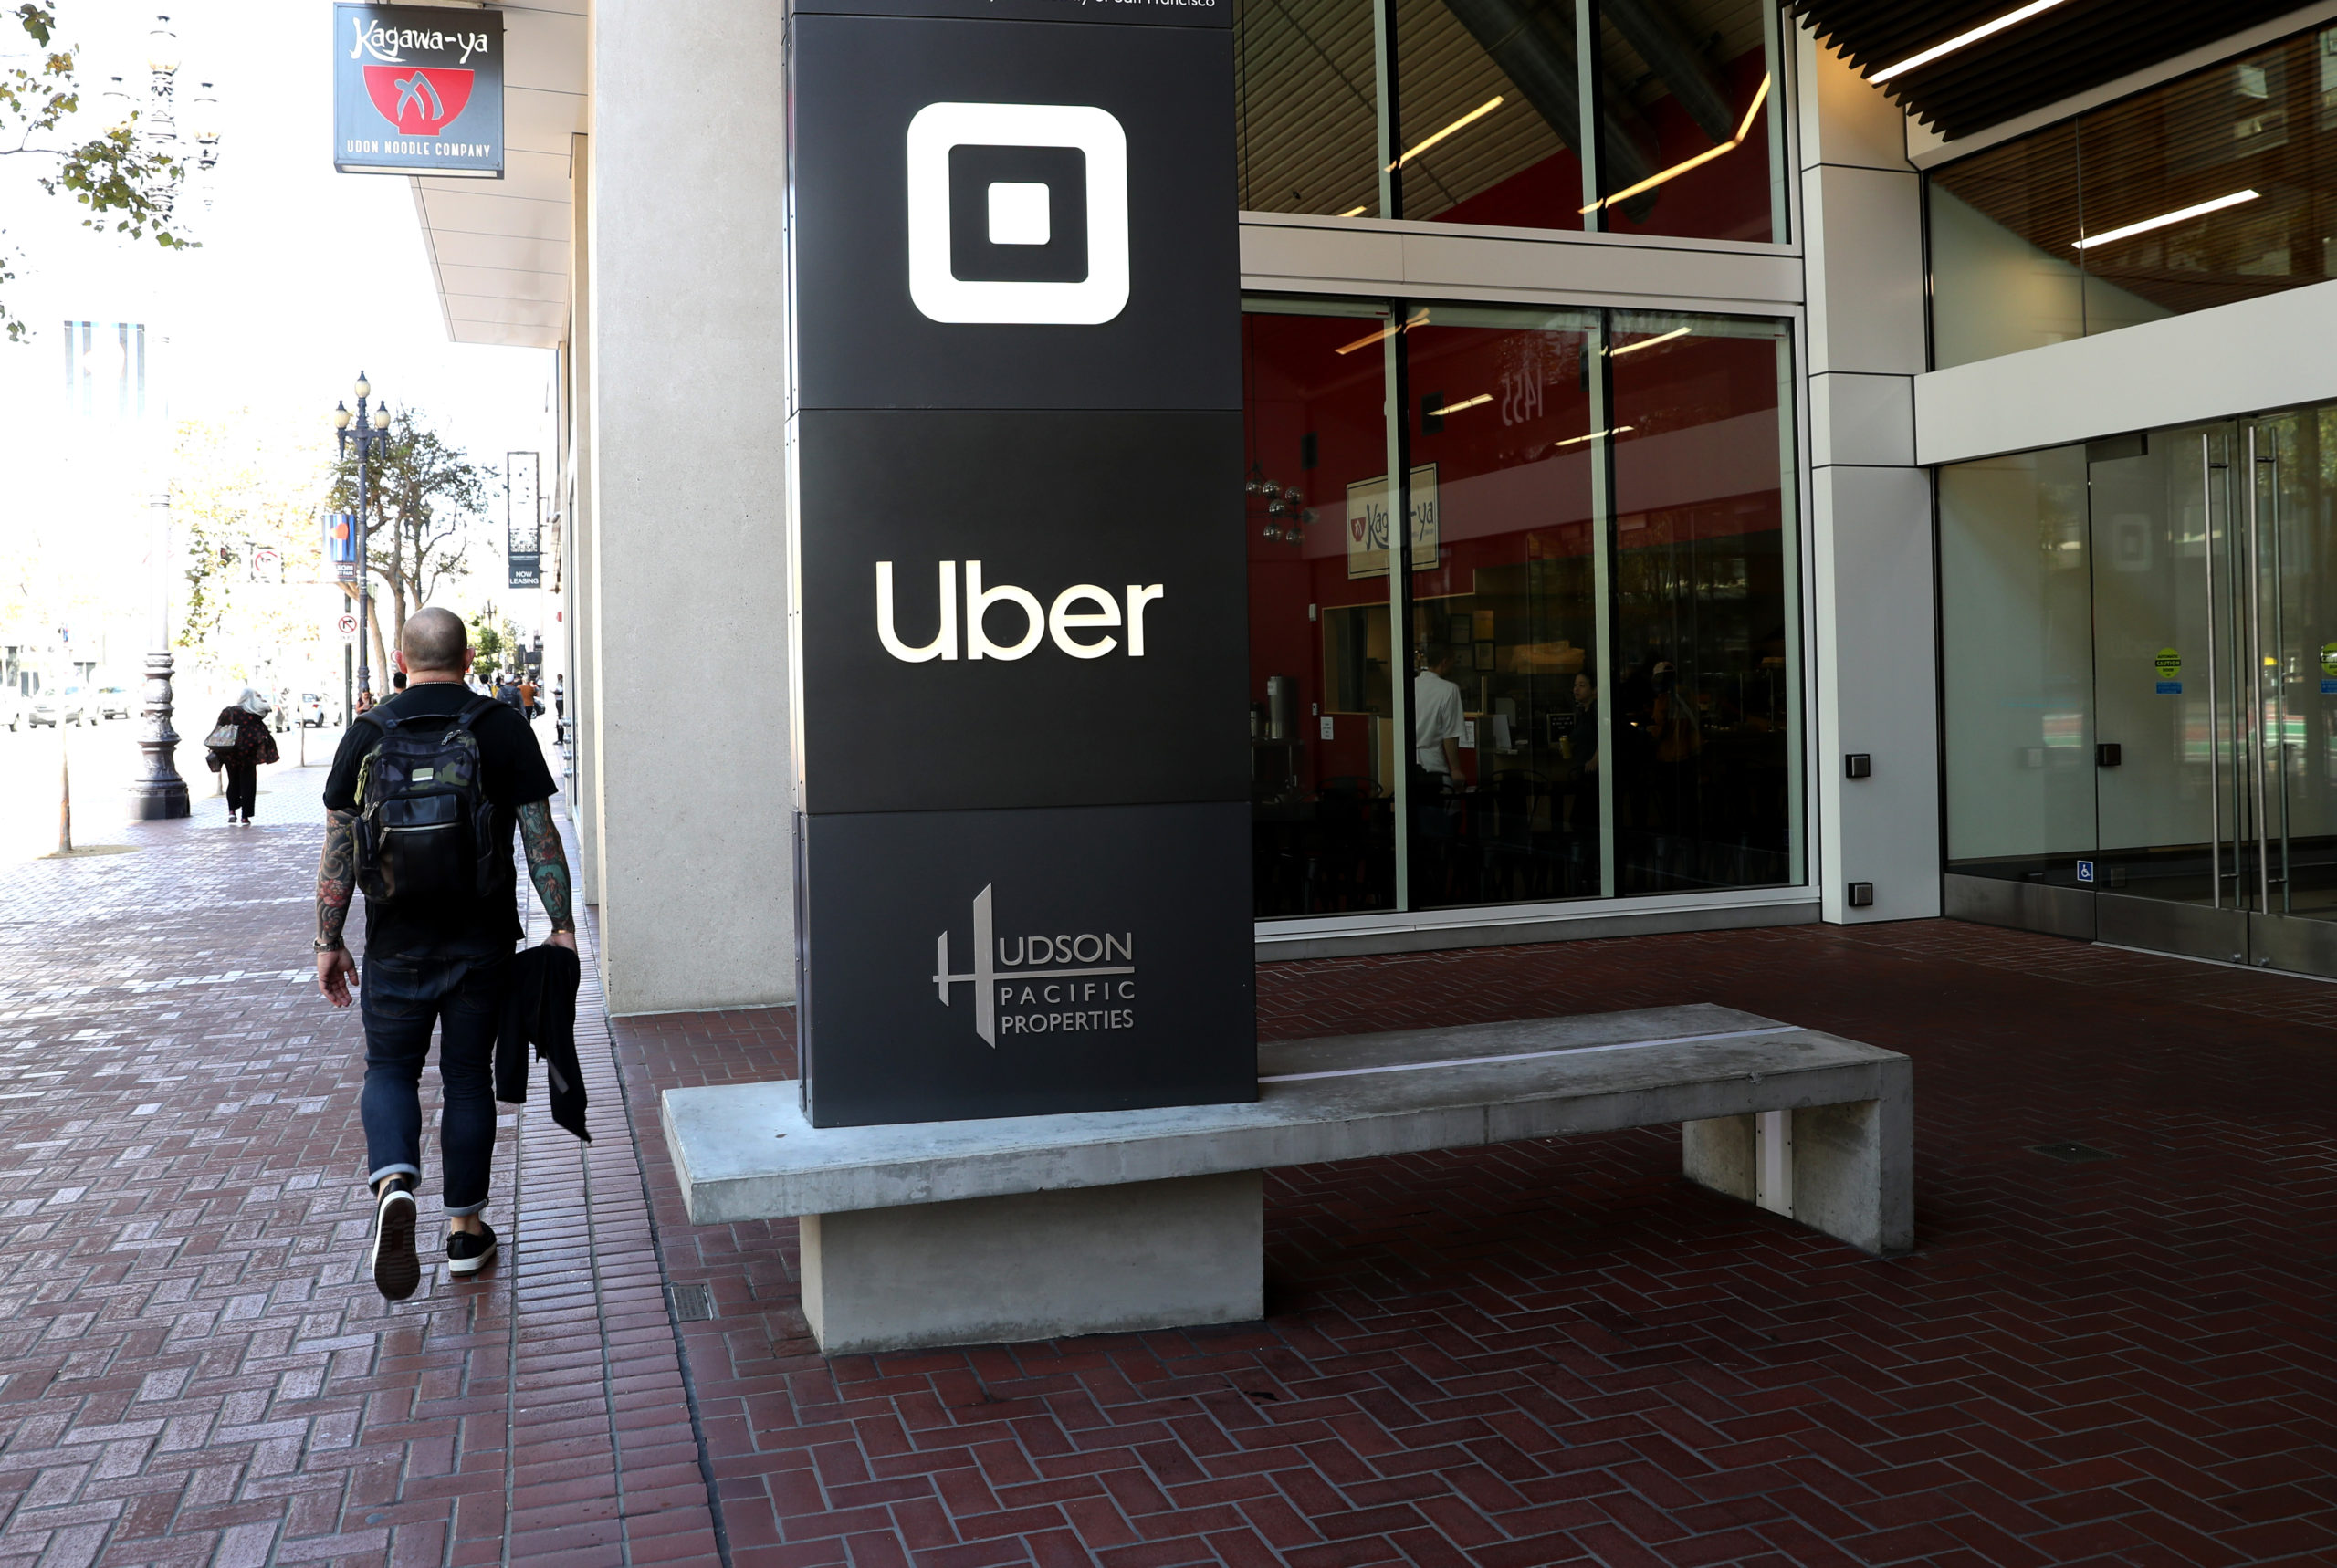 A pedestrian walks by Uber headquarters in San Francisco, California. (Justin Sullivan/Getty Images)